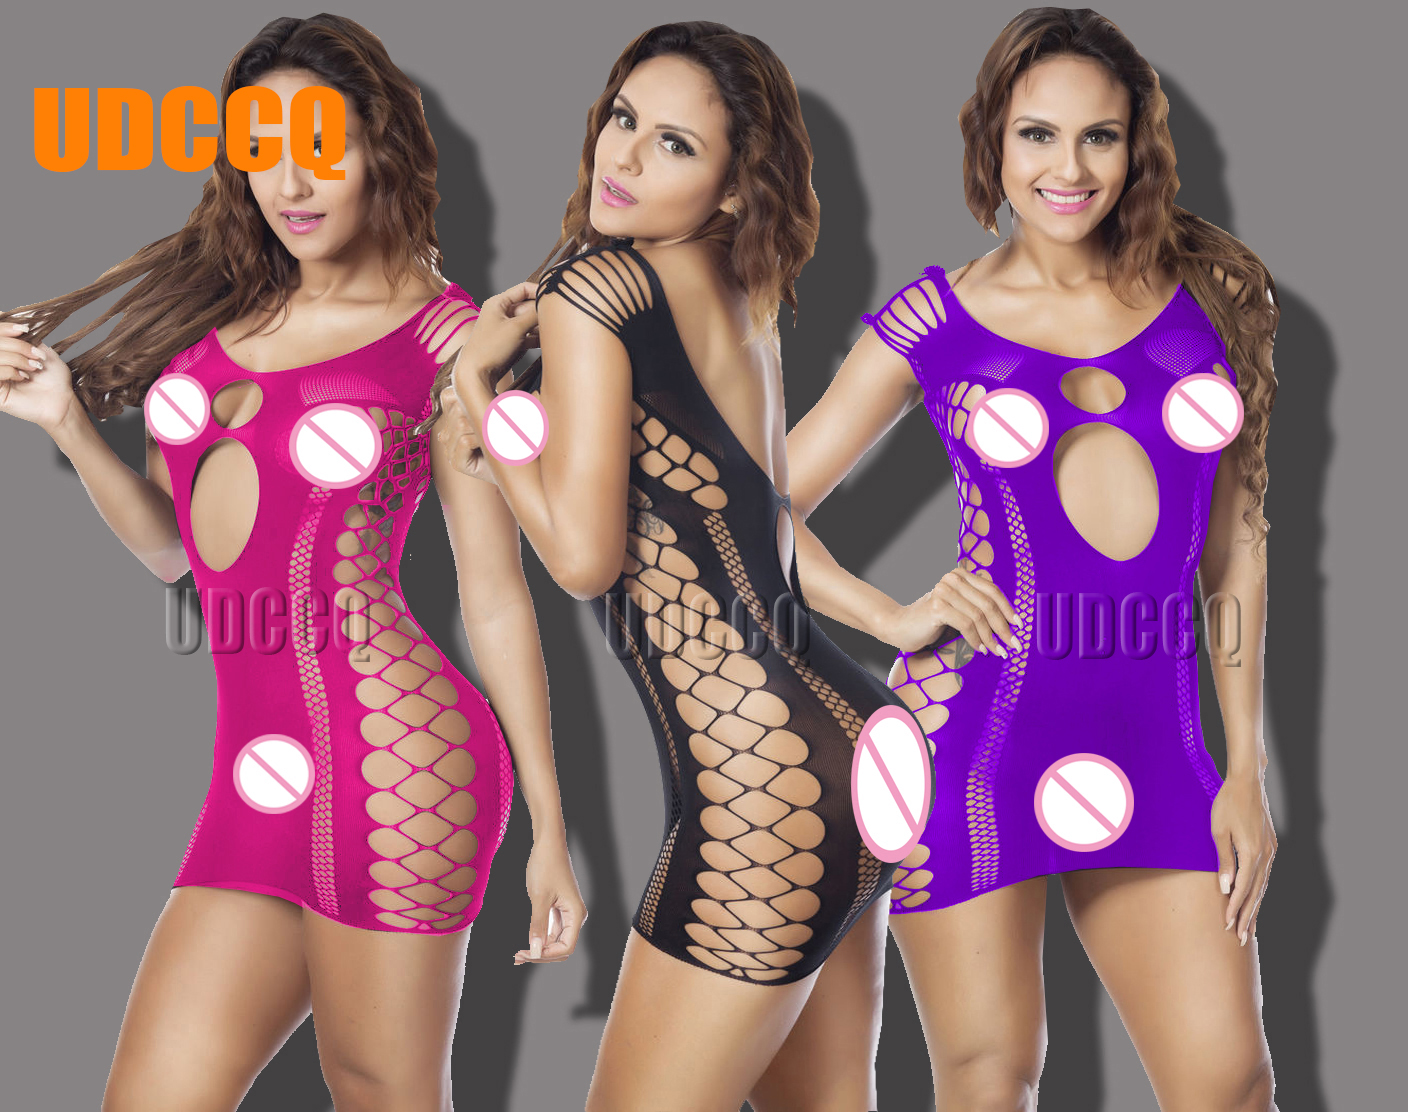 <font><b>sexy</b></font> <font><b>adult</b></font> Erotic Lingerie Hot <font><b>Sexy</b></font> Costumes Body stocking Bustiers Corsets Underwear Slips Fishnet Intimates <font><b>Dress</b></font> Sleepwear image